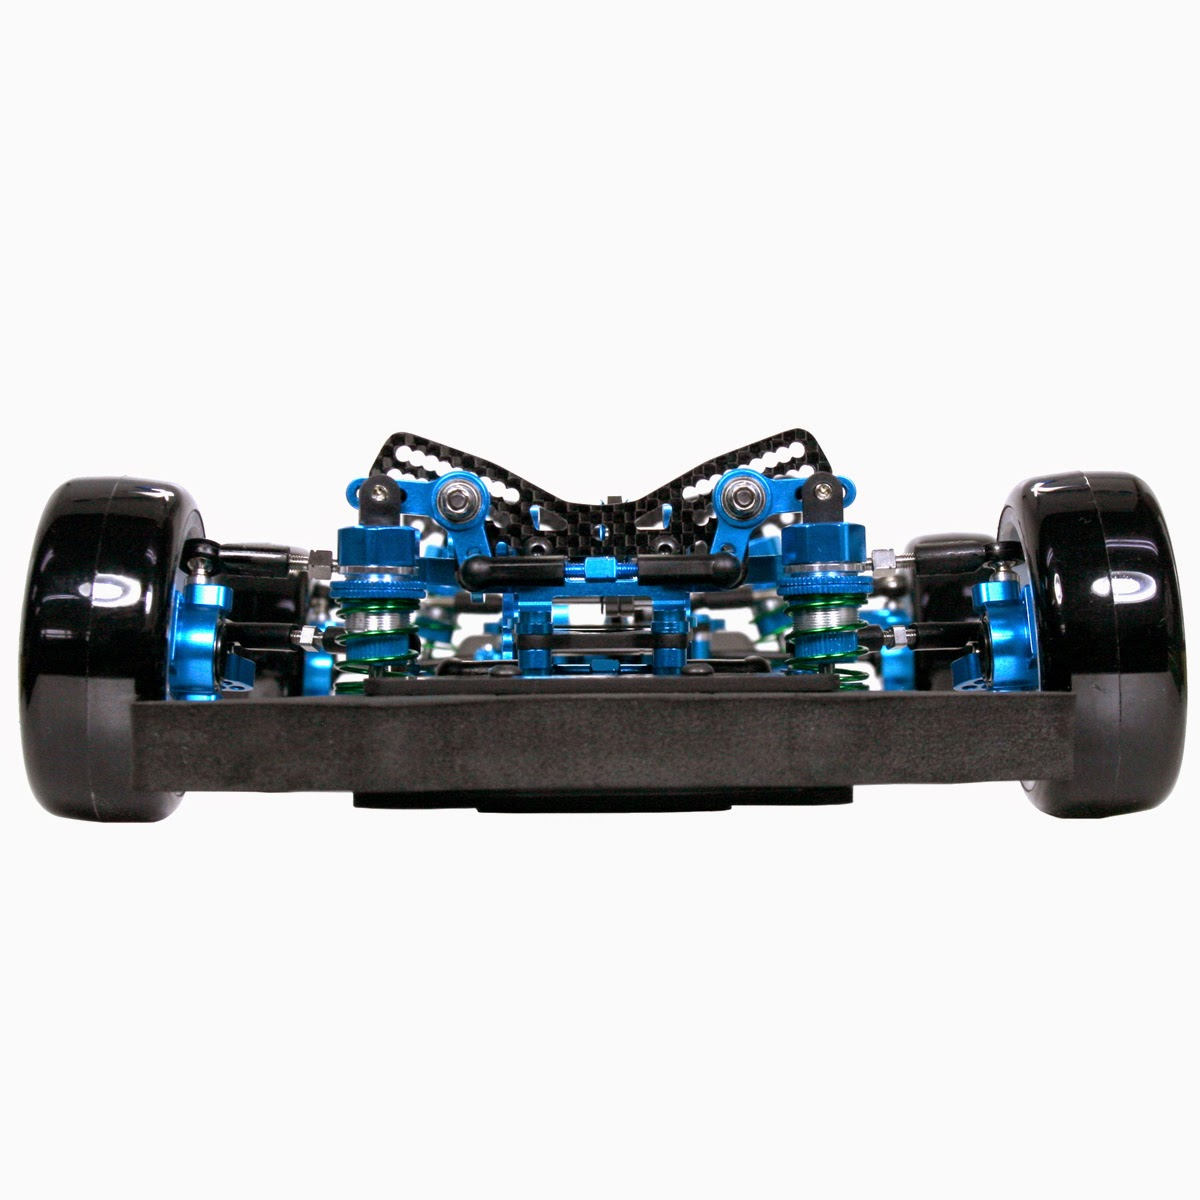 TA05-RWD Drift GRT Chassis Kit Now On SALE !!